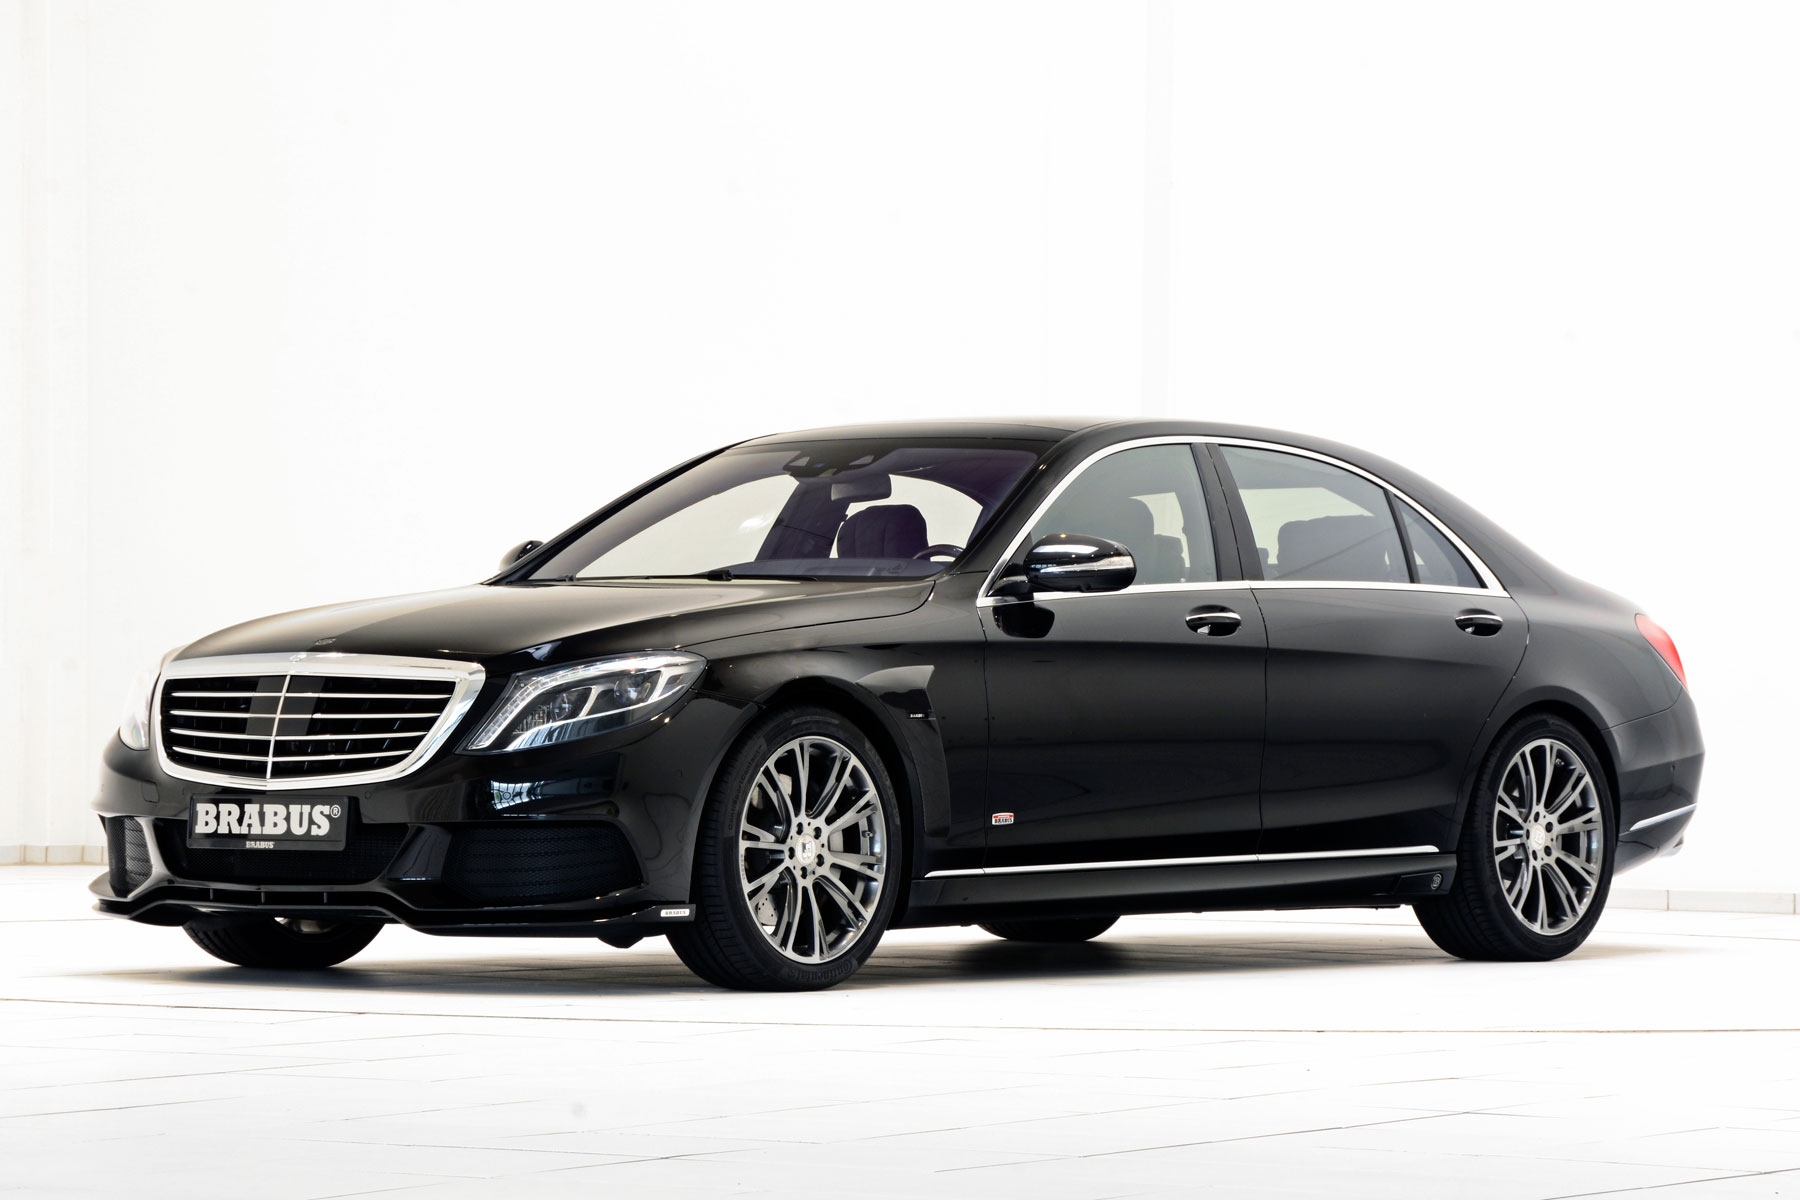 Brabus reveals 500hp Mercedes S-Class Plug-in Hybrid